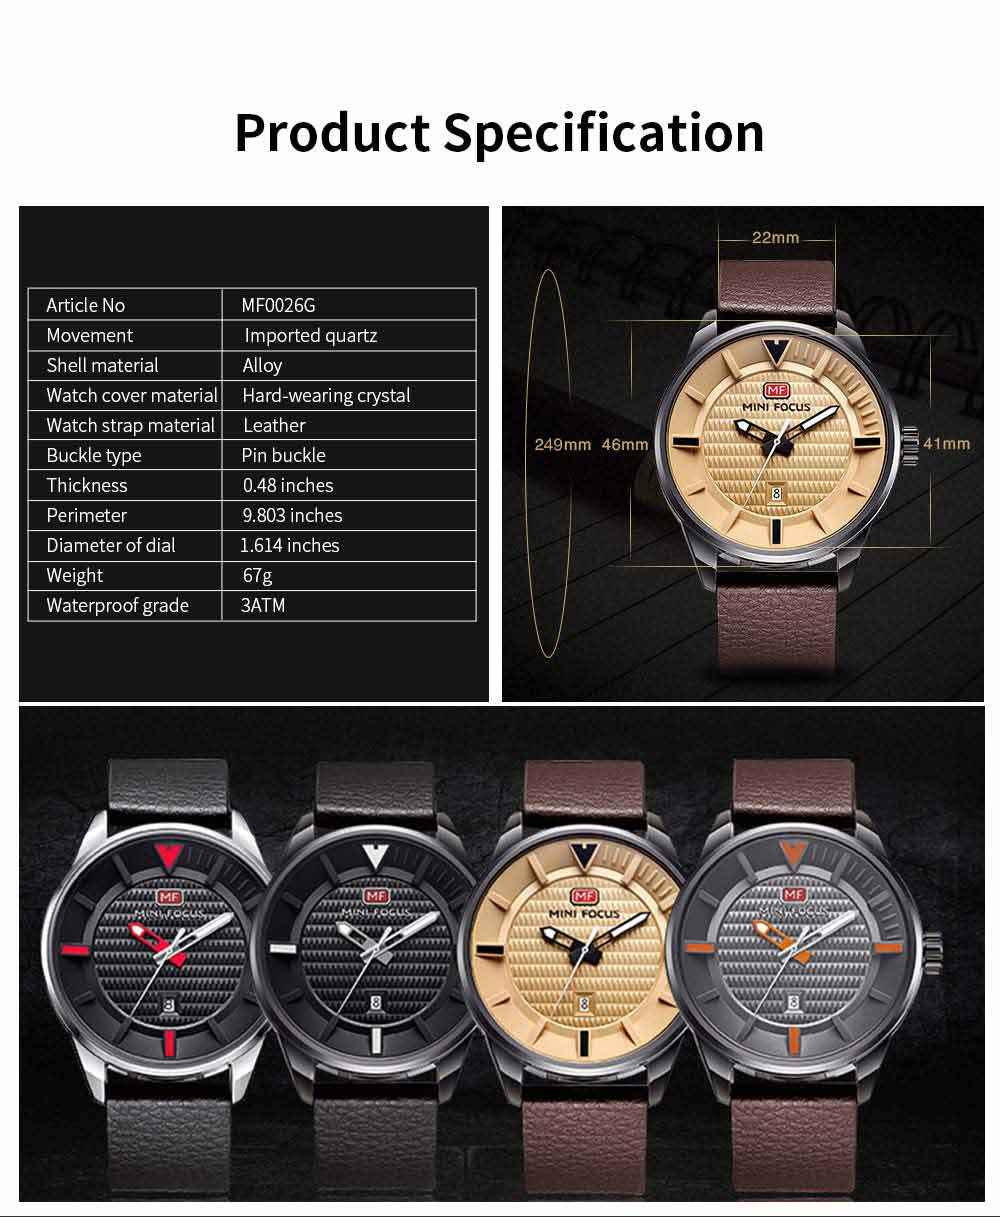 MINI FOCUS Men's Watch with Japanese Movement, High Quality Quartz Watch with Leather Strap Waterproof 30M 4